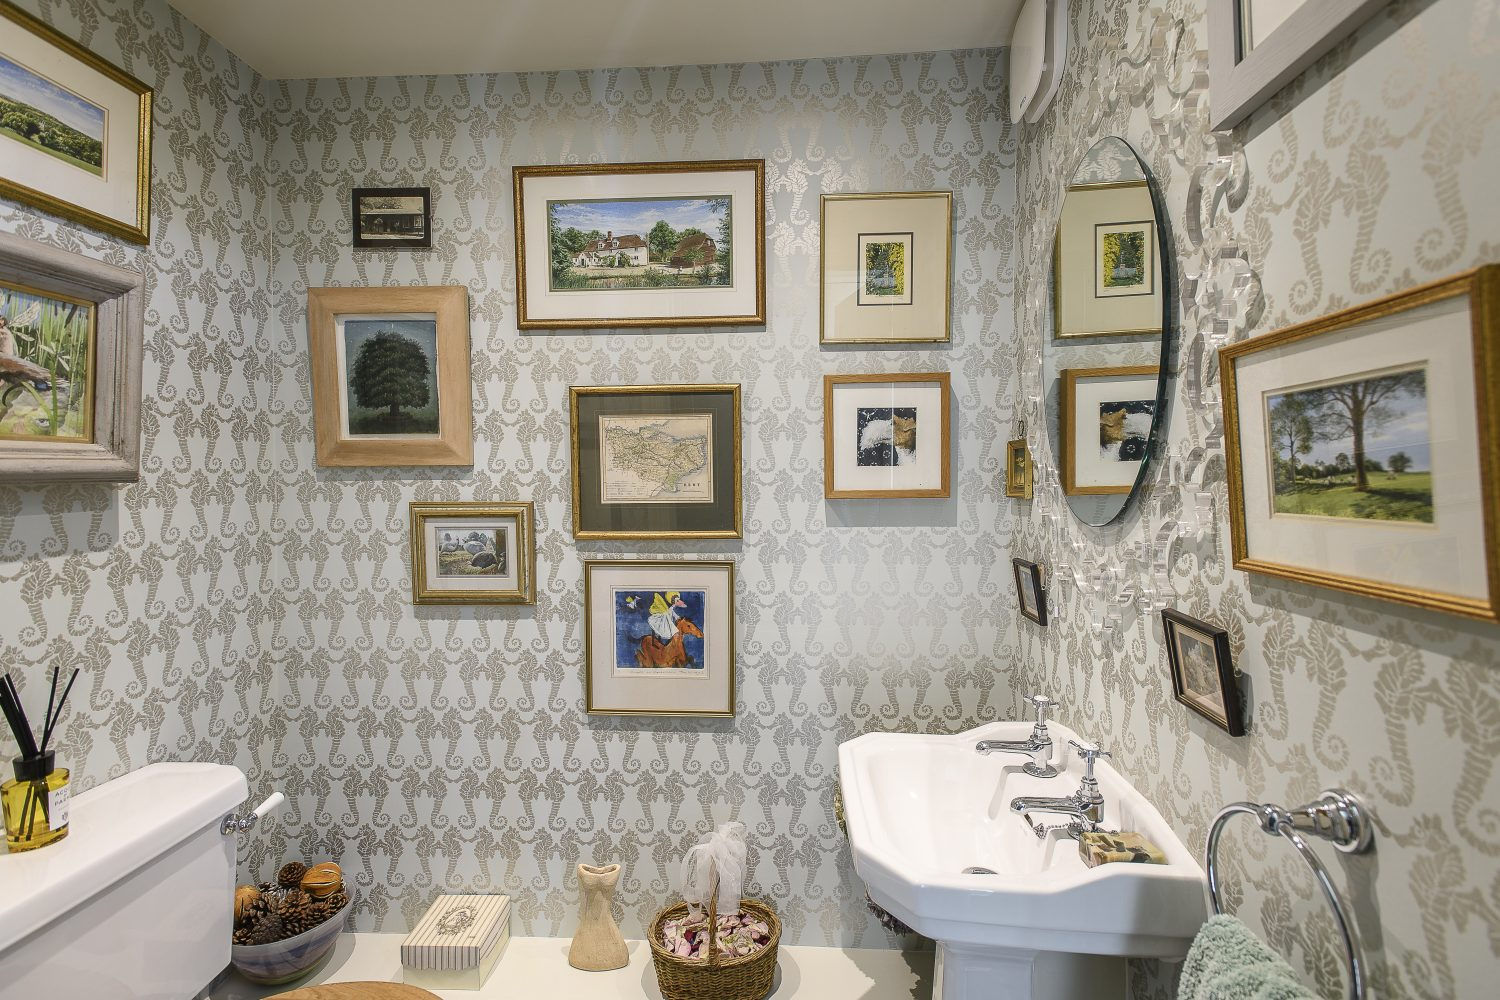 The downstairs cloakroom is papered in Eve's favourite wallpaper – Seahorse by Barneby Gates